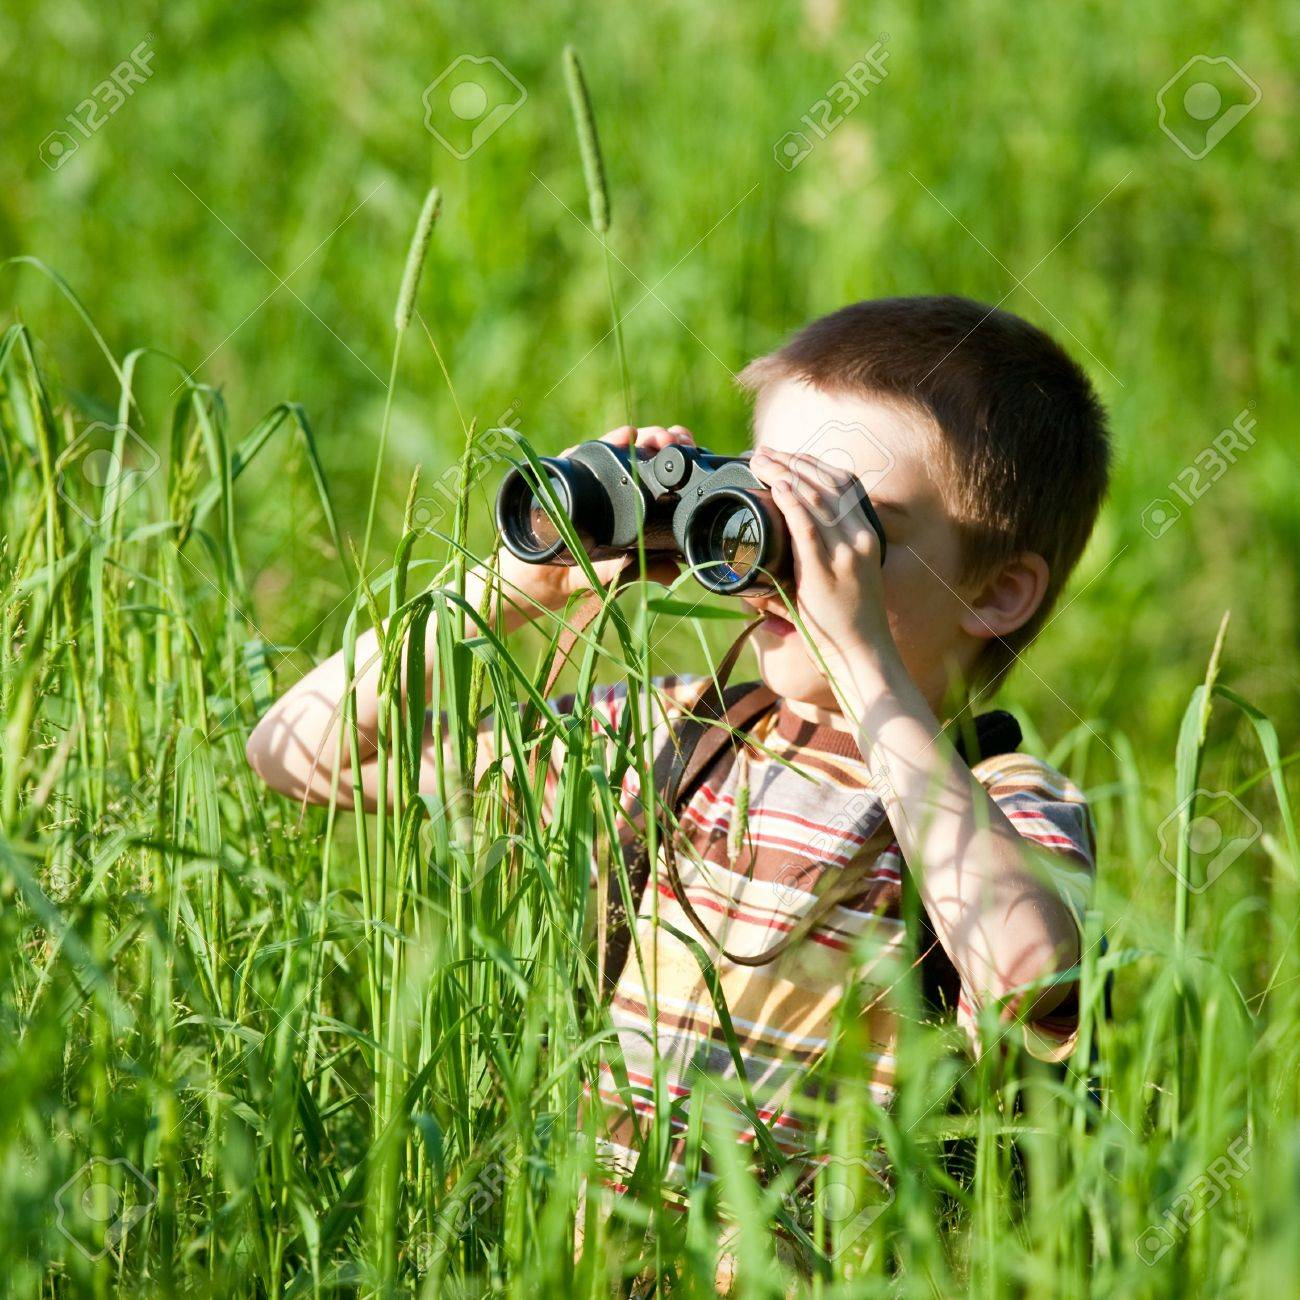 Young boy in a field looking through binoculars Stock Photo - 5111490